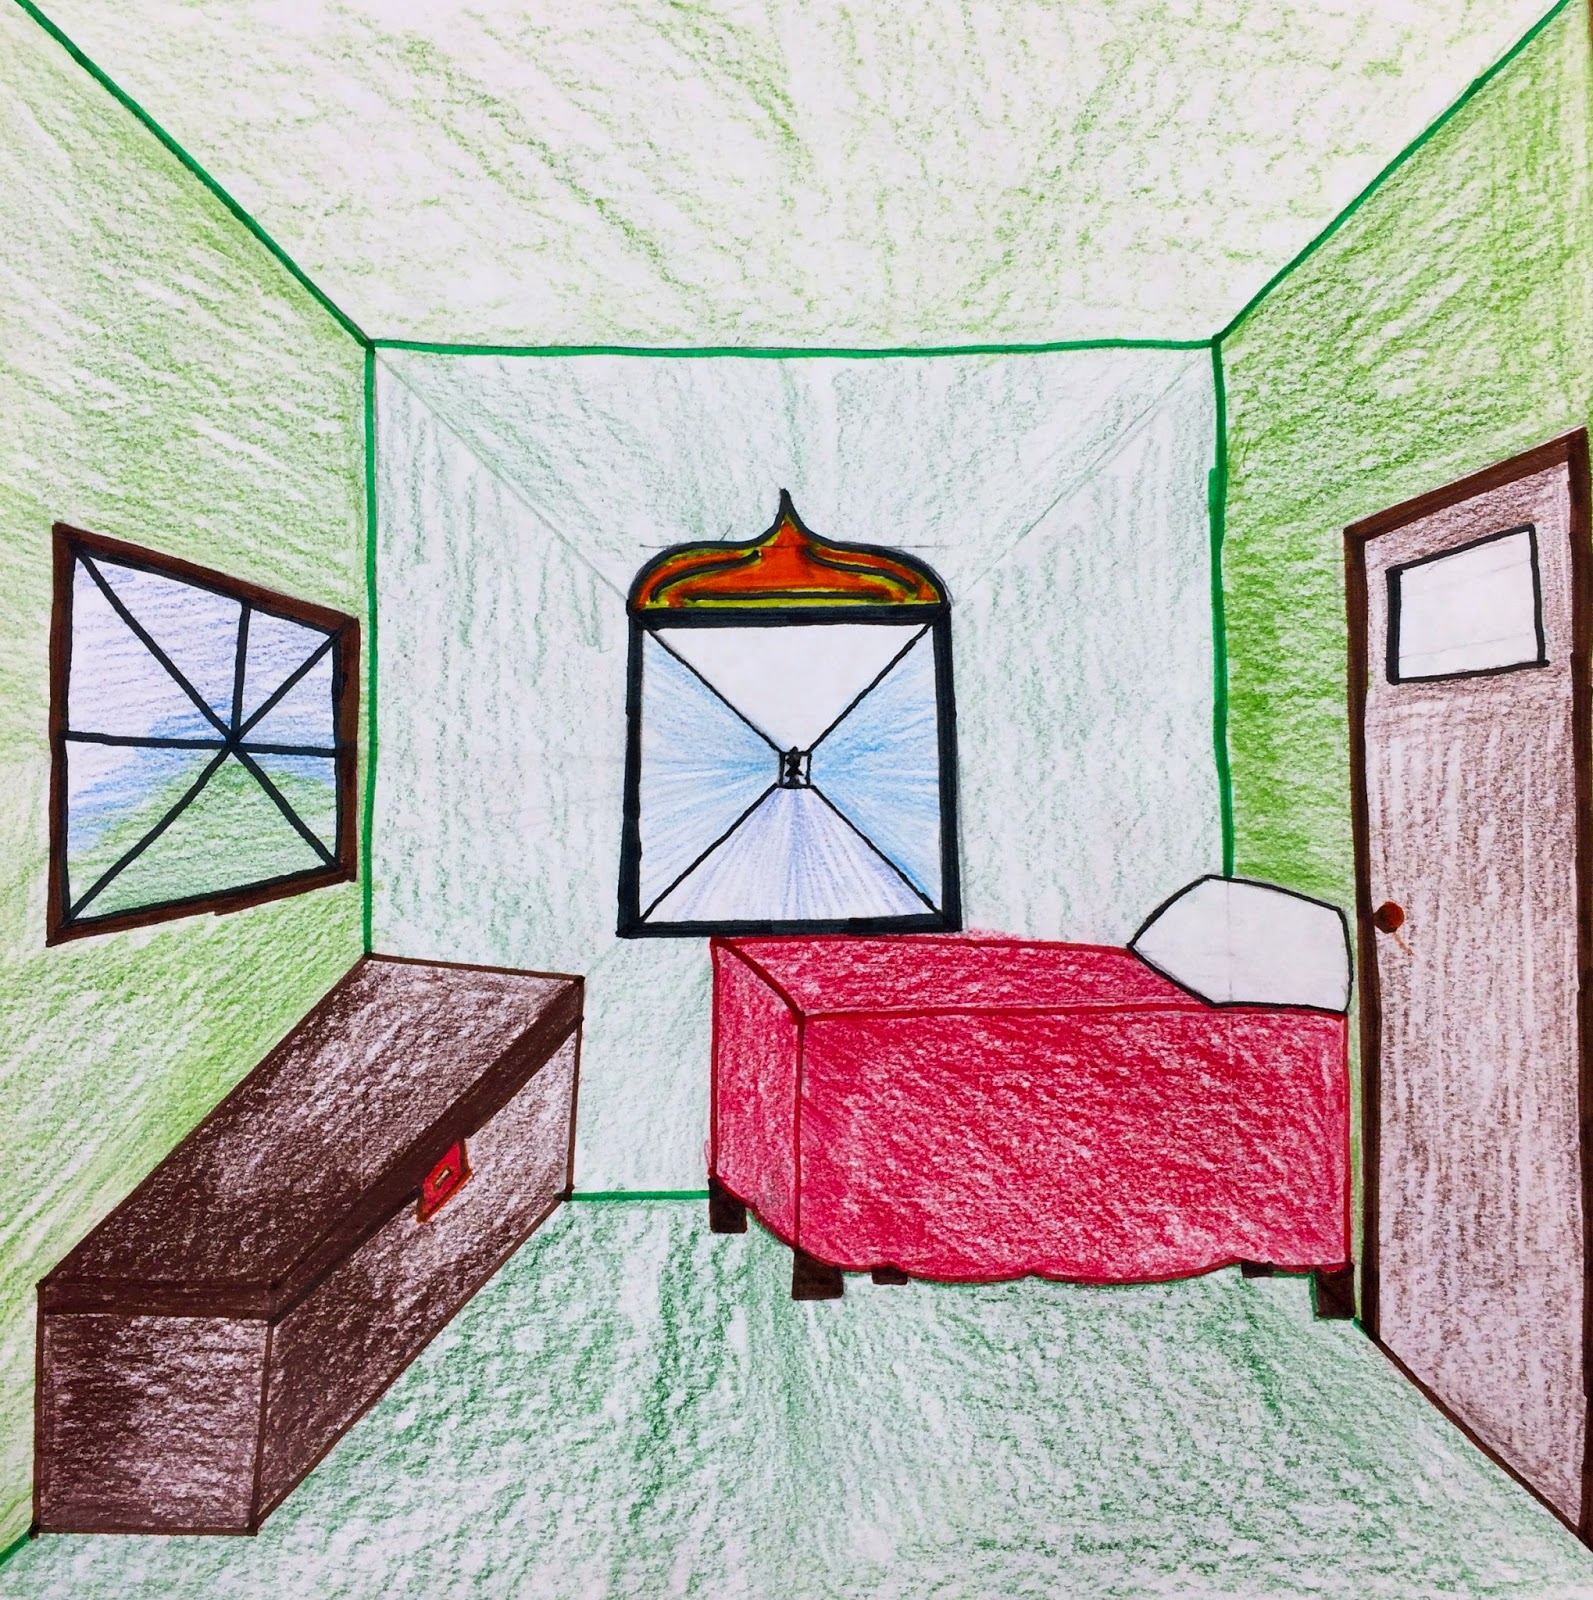 Bedroom One Point Perspective Bedroom Interior Paint Bedroom Chairs With Footstool Bedroom Paint Colours Blue: The Helpful Art Teacher: Draw A Surrealistic Room In One